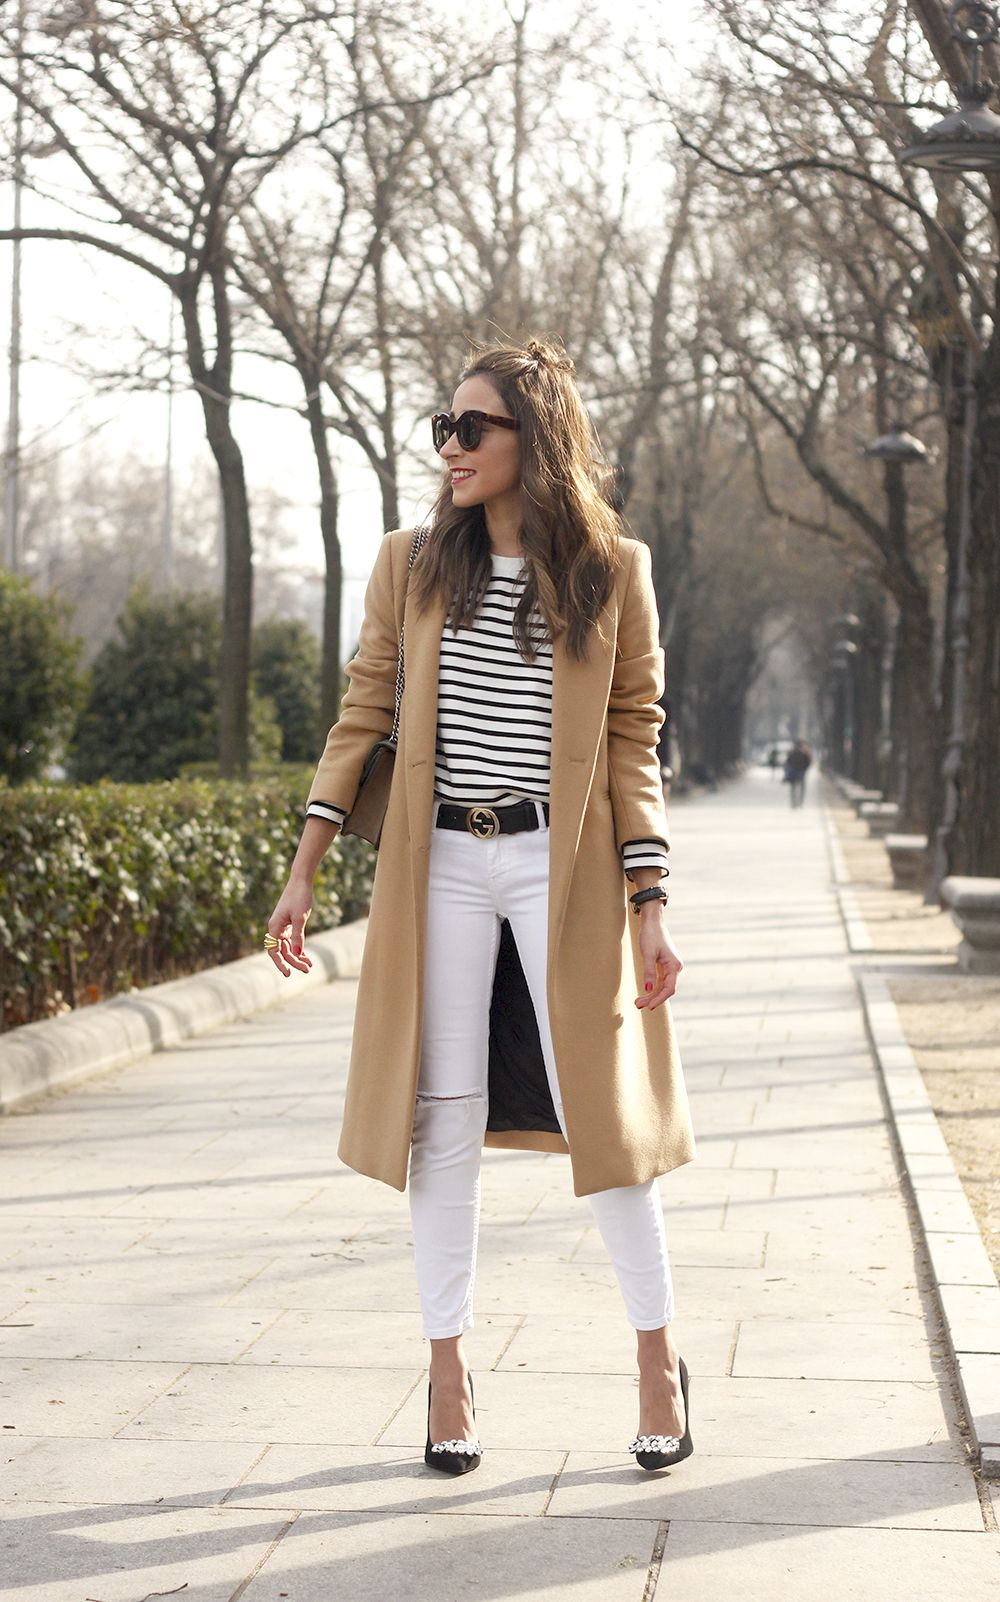 camel coat strieps white ripped jeans black heels uterqüe belt gucci céline sunnies outfit fashion style09